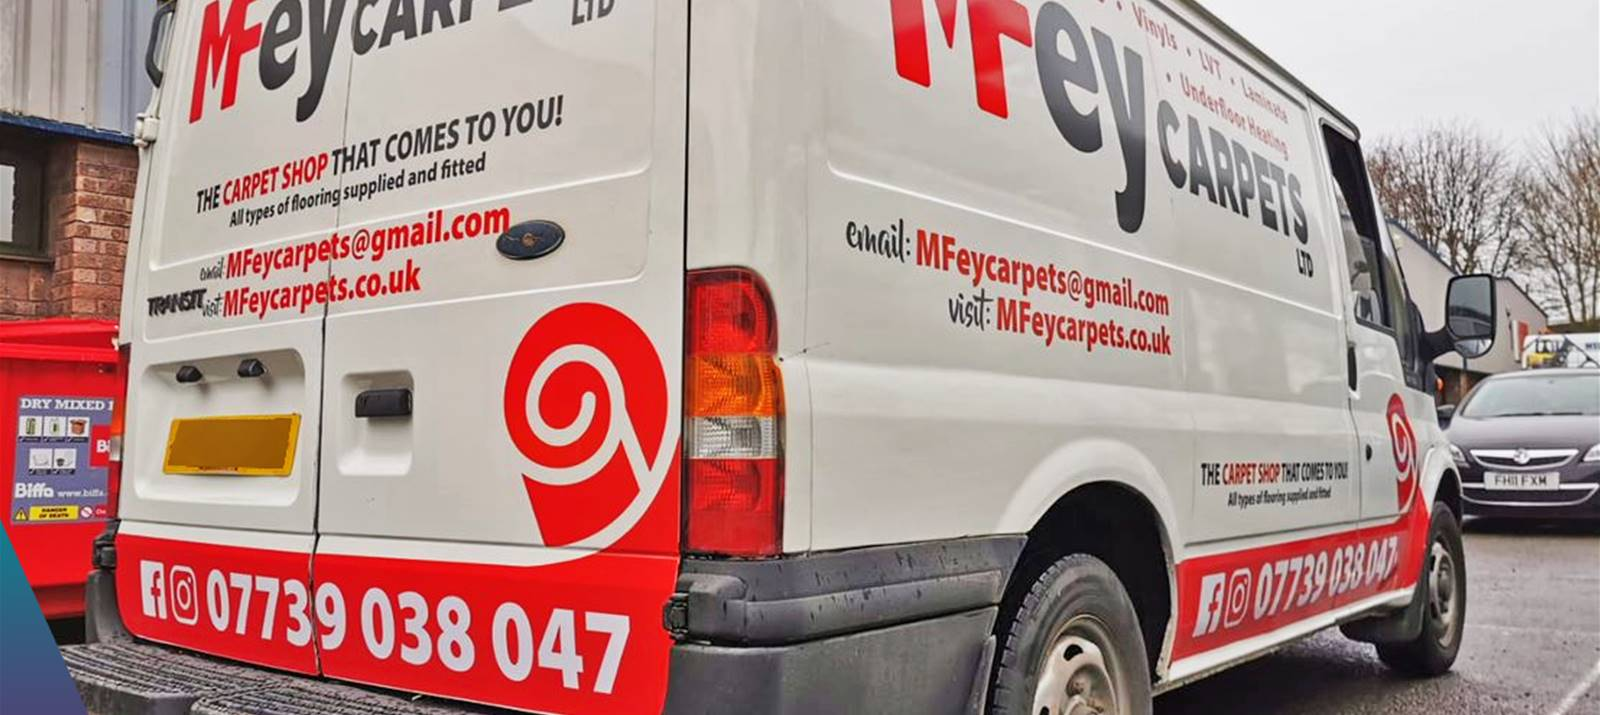 Vehicle Wrap for MFey Carpets